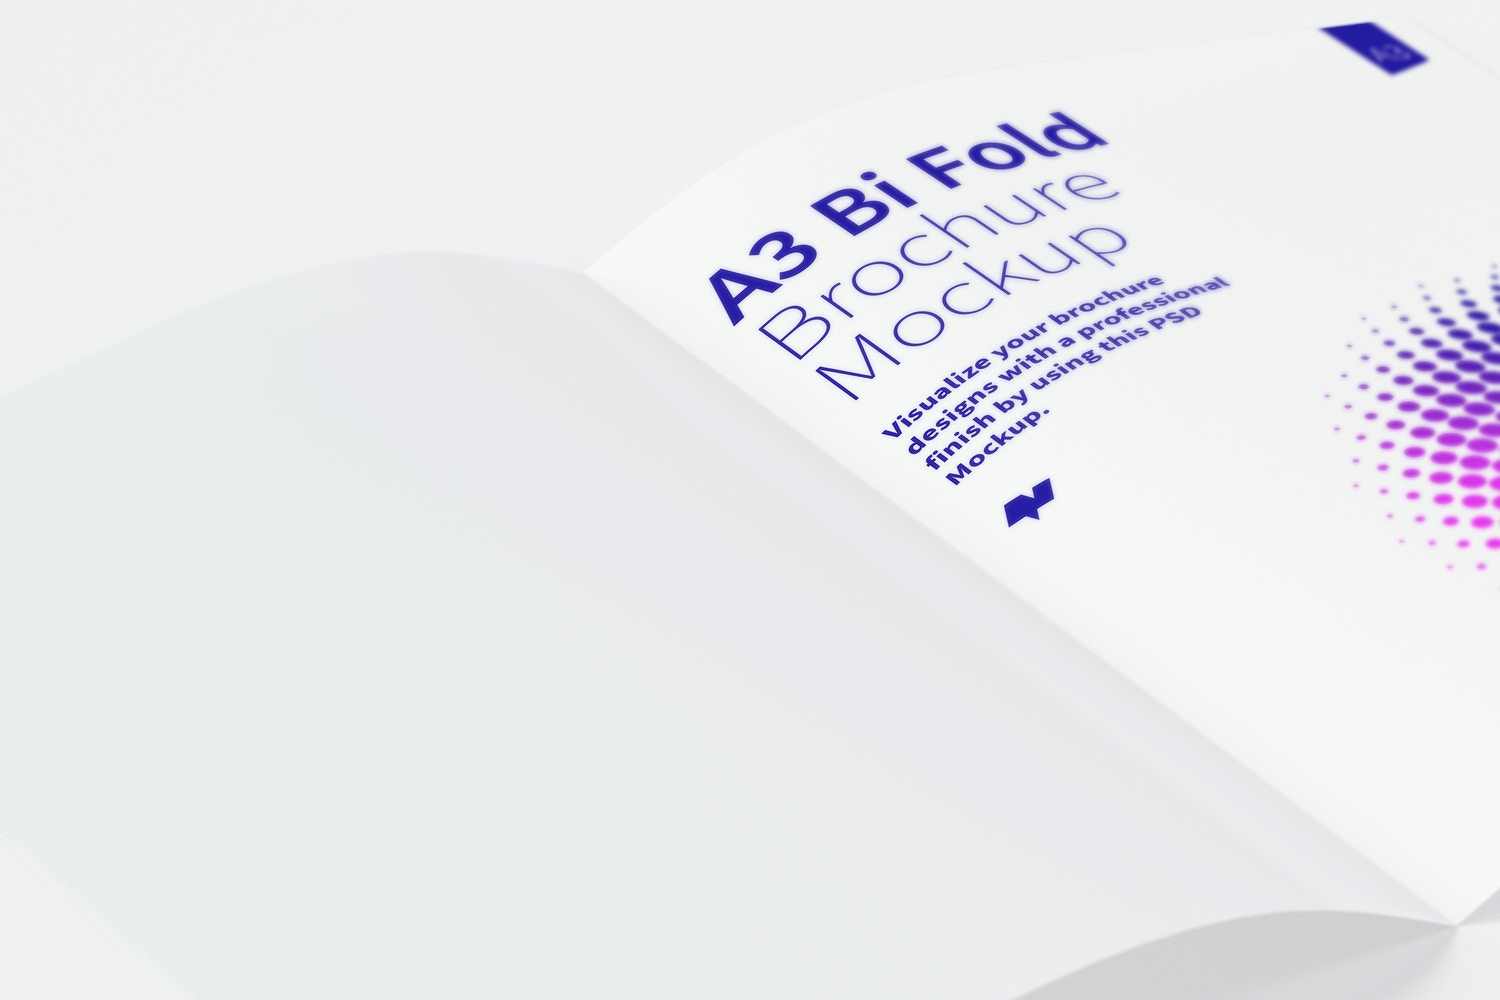 A3 Bi Fold Brochure Mockup 04 by Original Mockups on Original Mockups